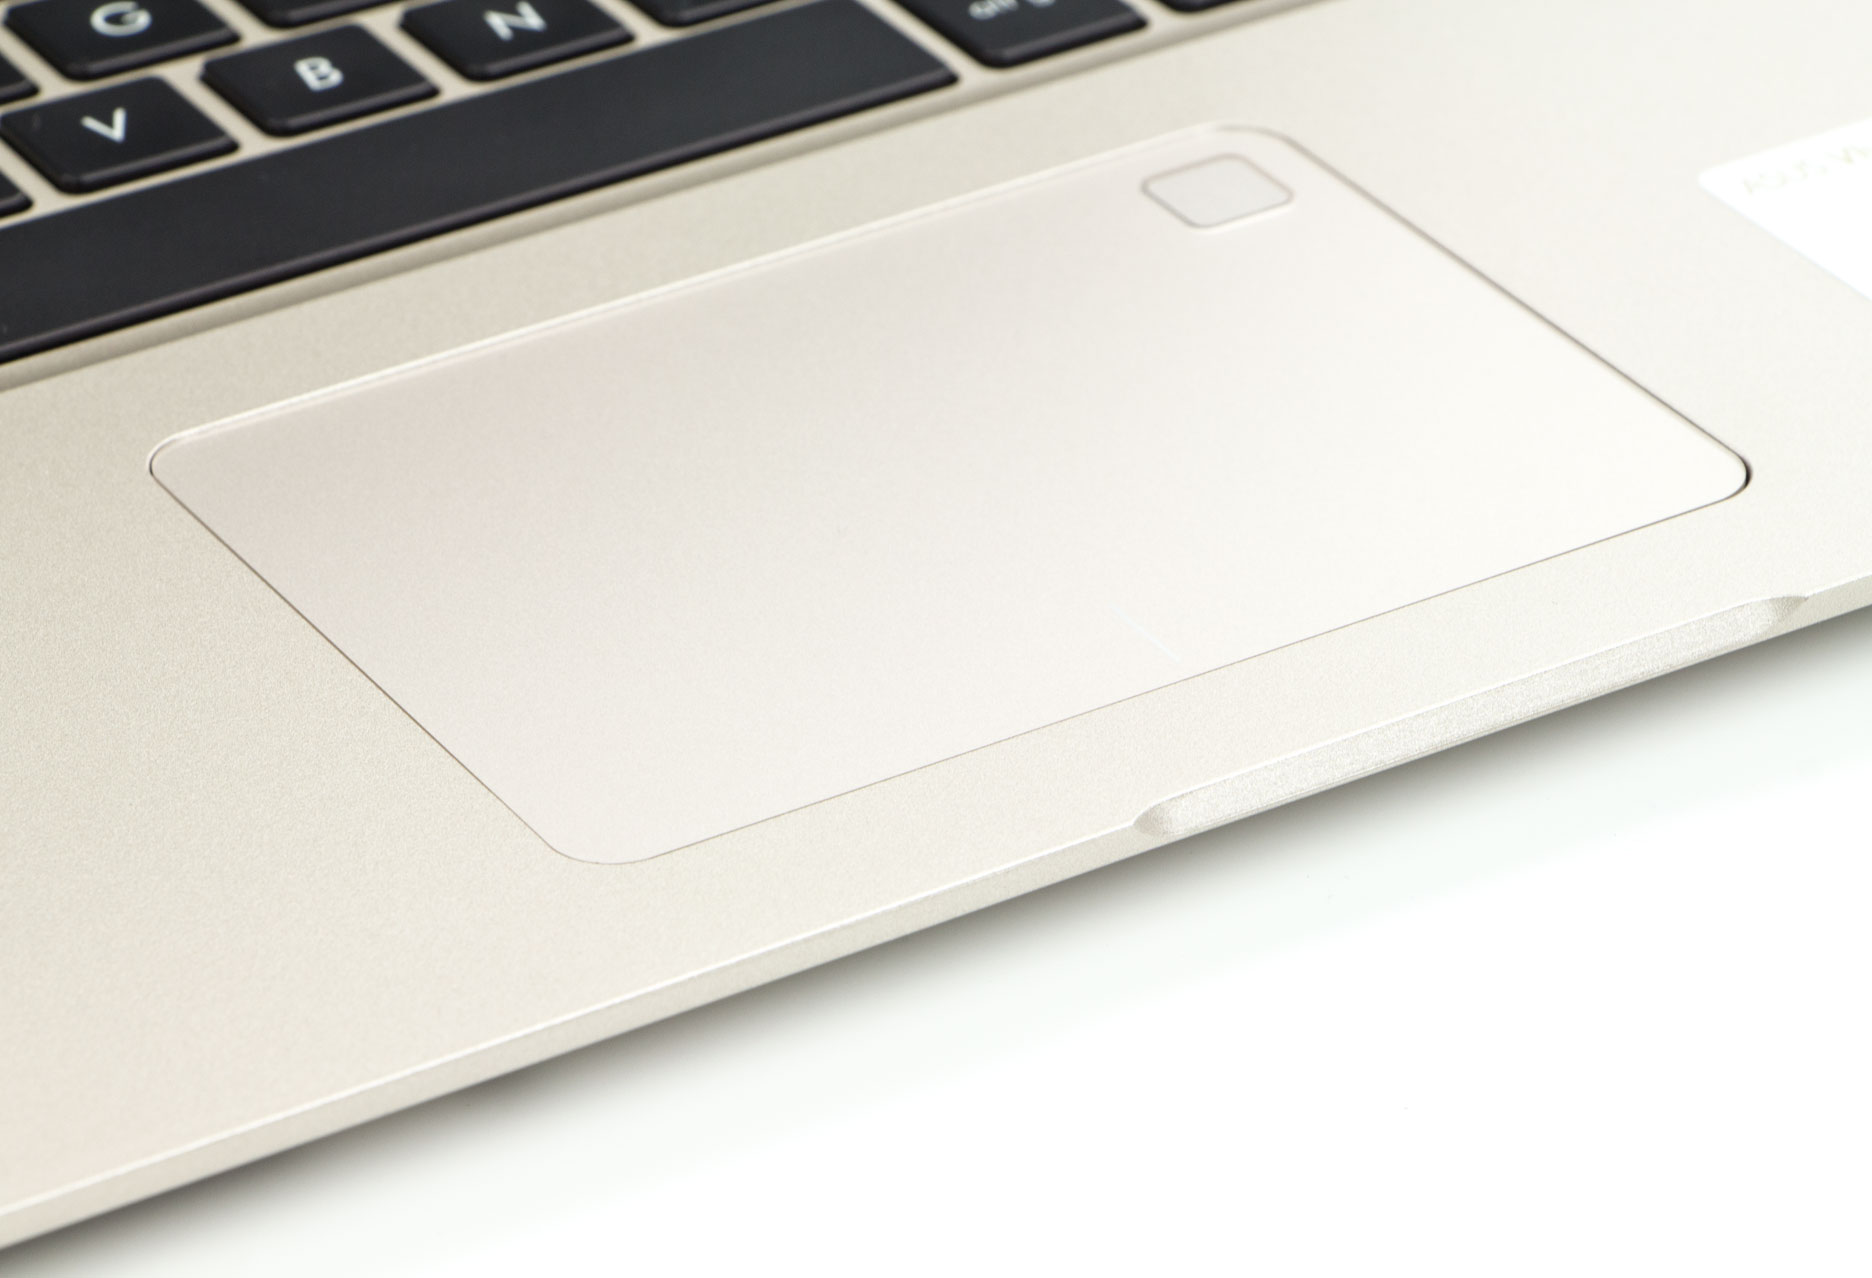 Asus VivoBook S15 touchpad